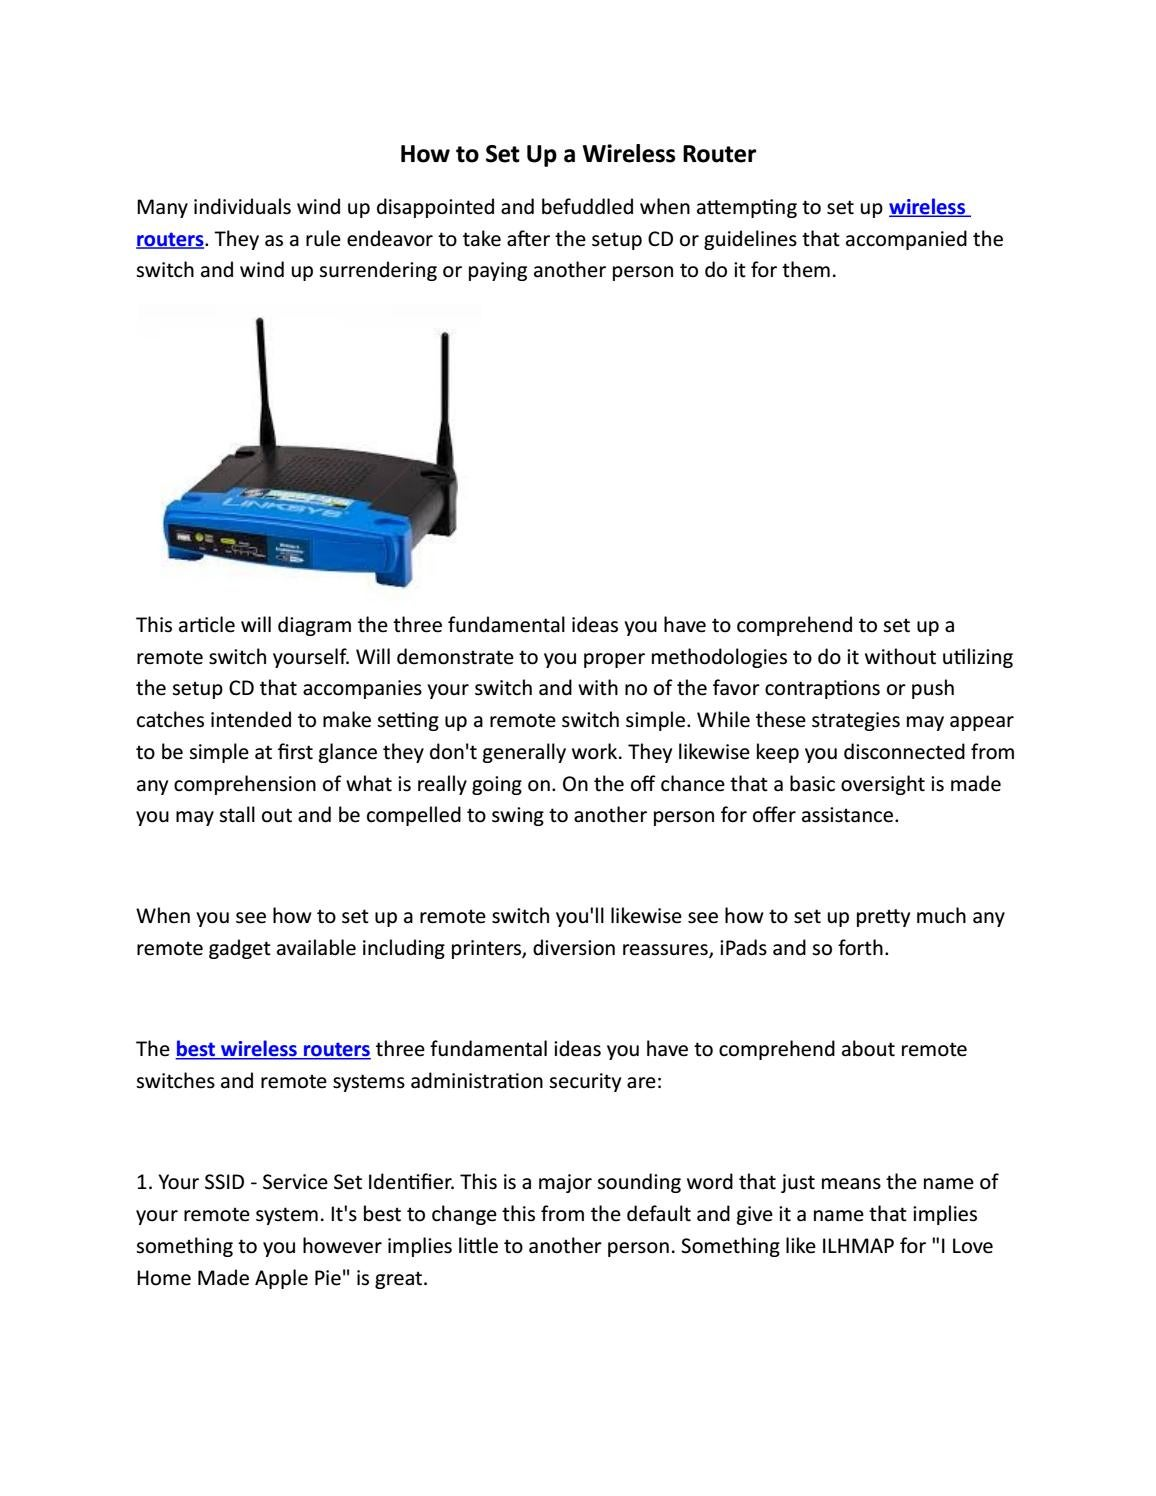 How To Set Up A Wireless Router By Digital Issuu Hook Diagram